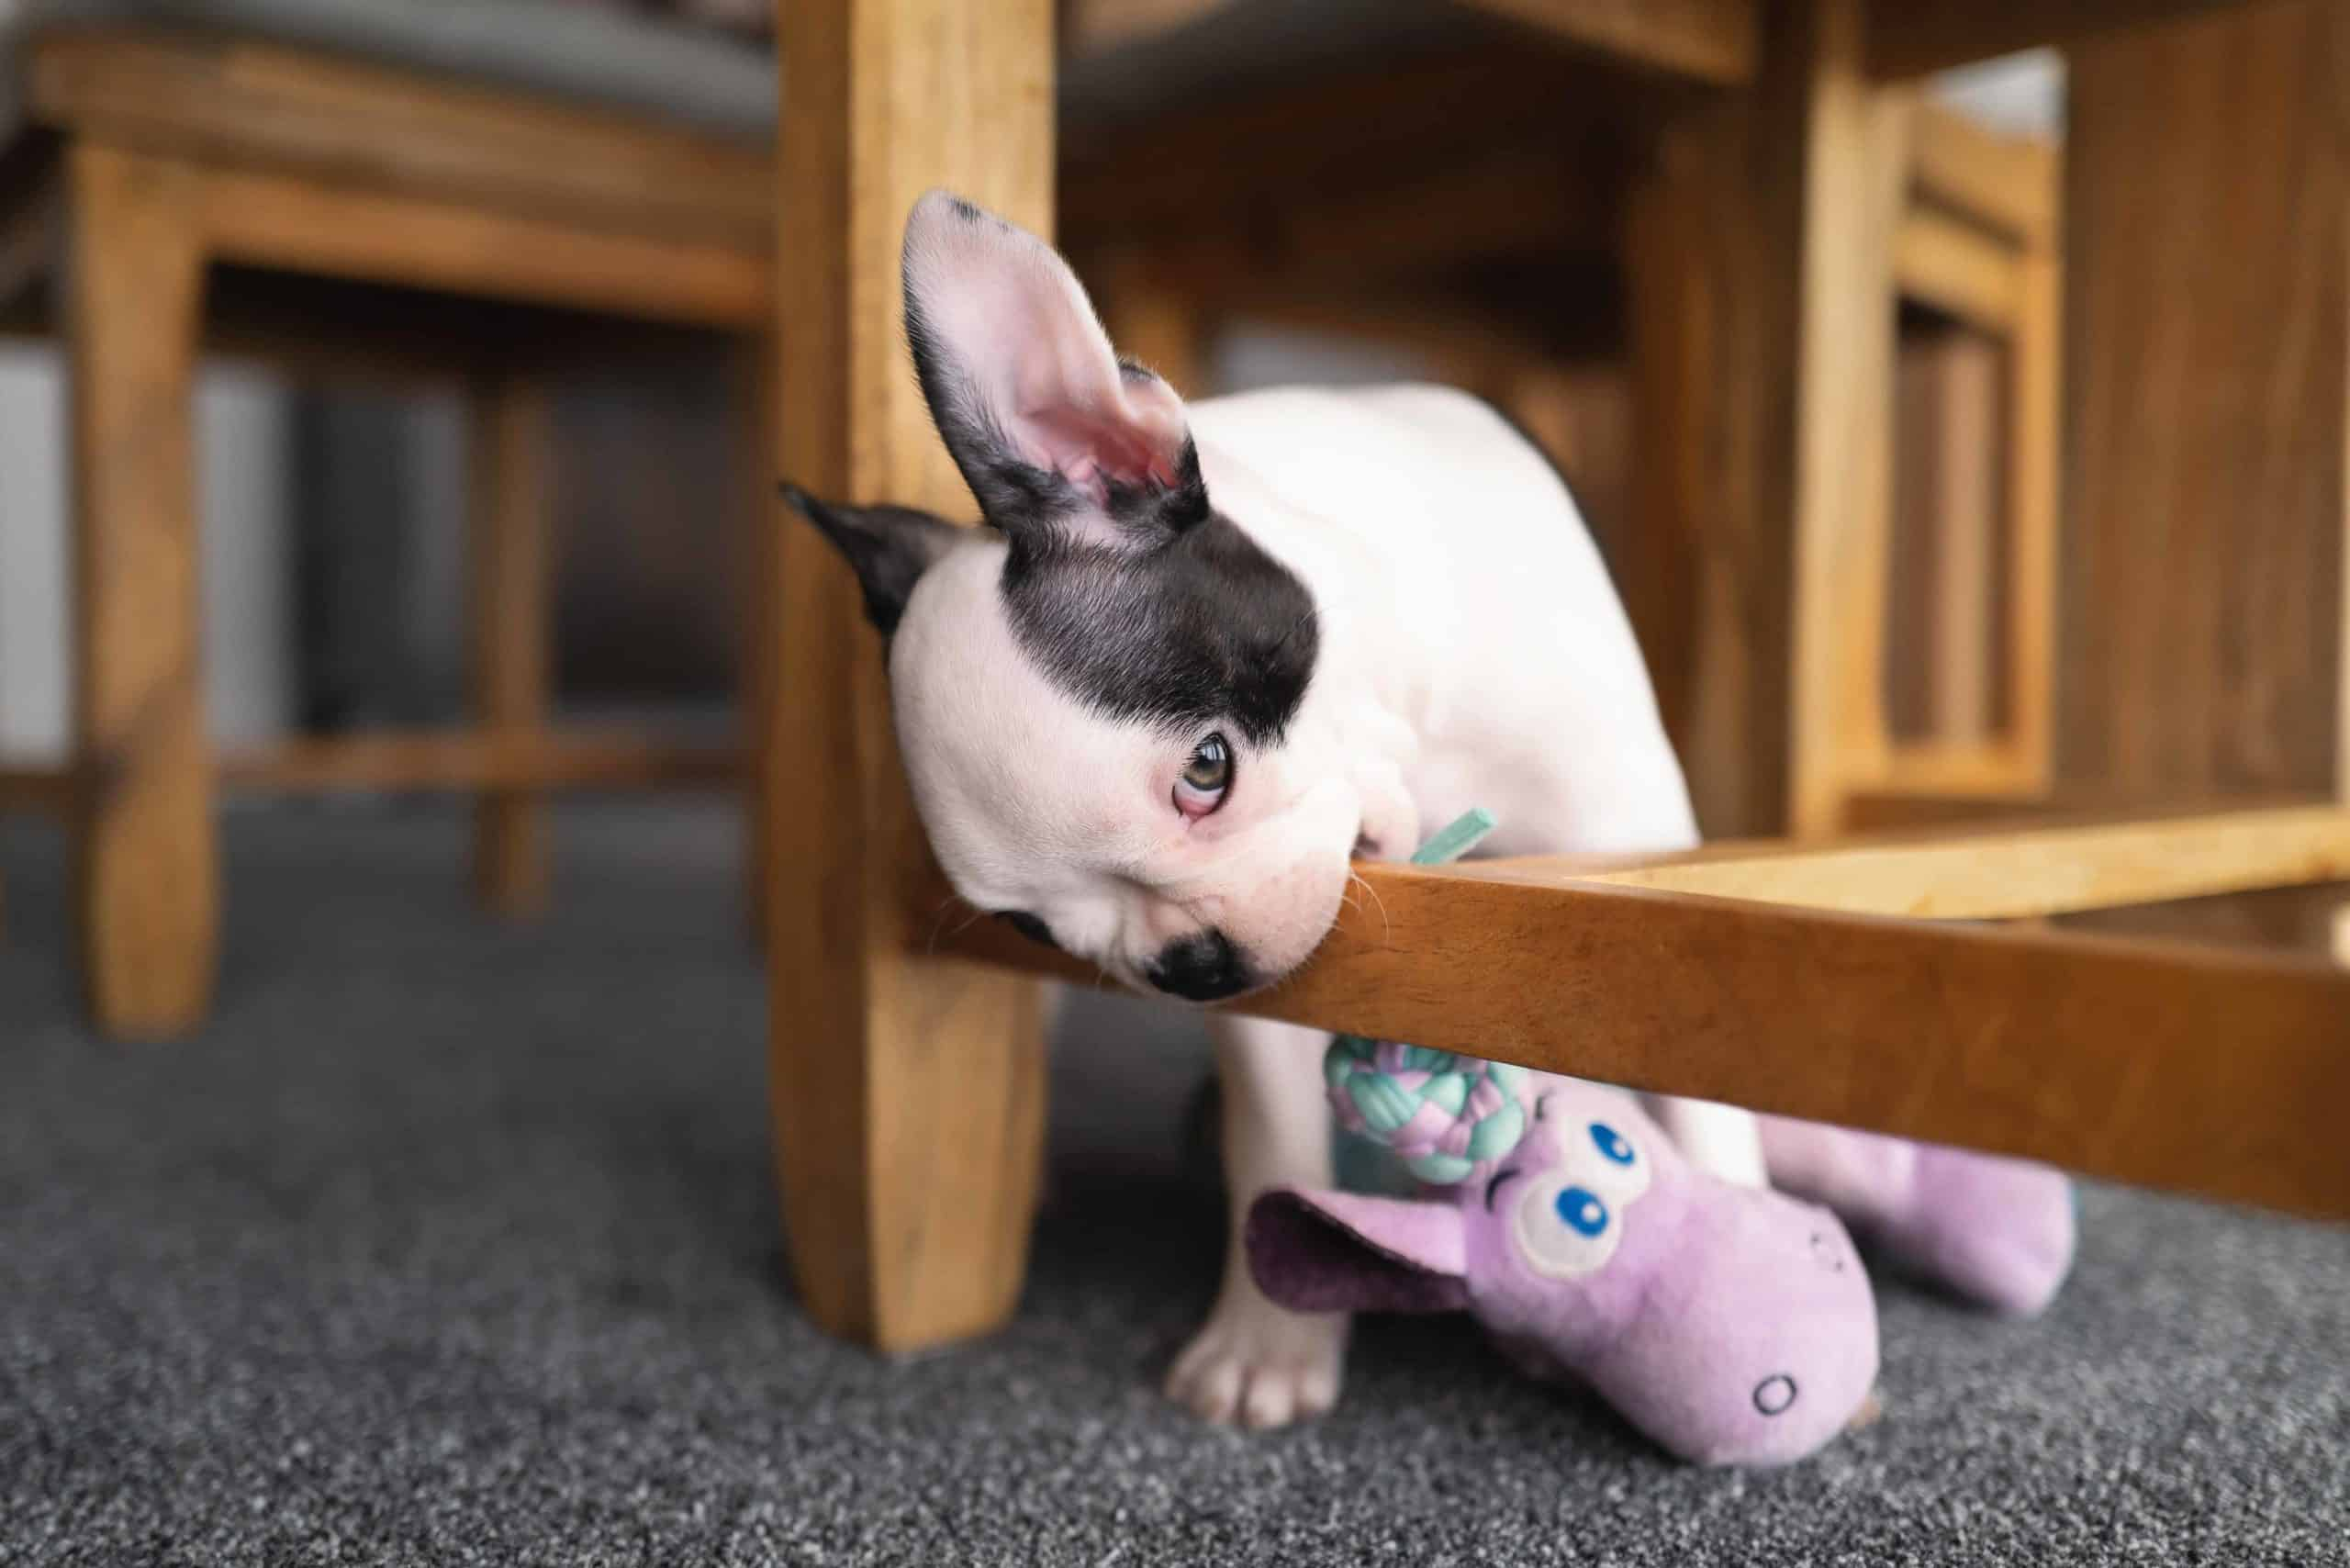 French bulldog chews on table. Stop teething puppy from chewing on furniture using toys and games, taste deterrents, and training.